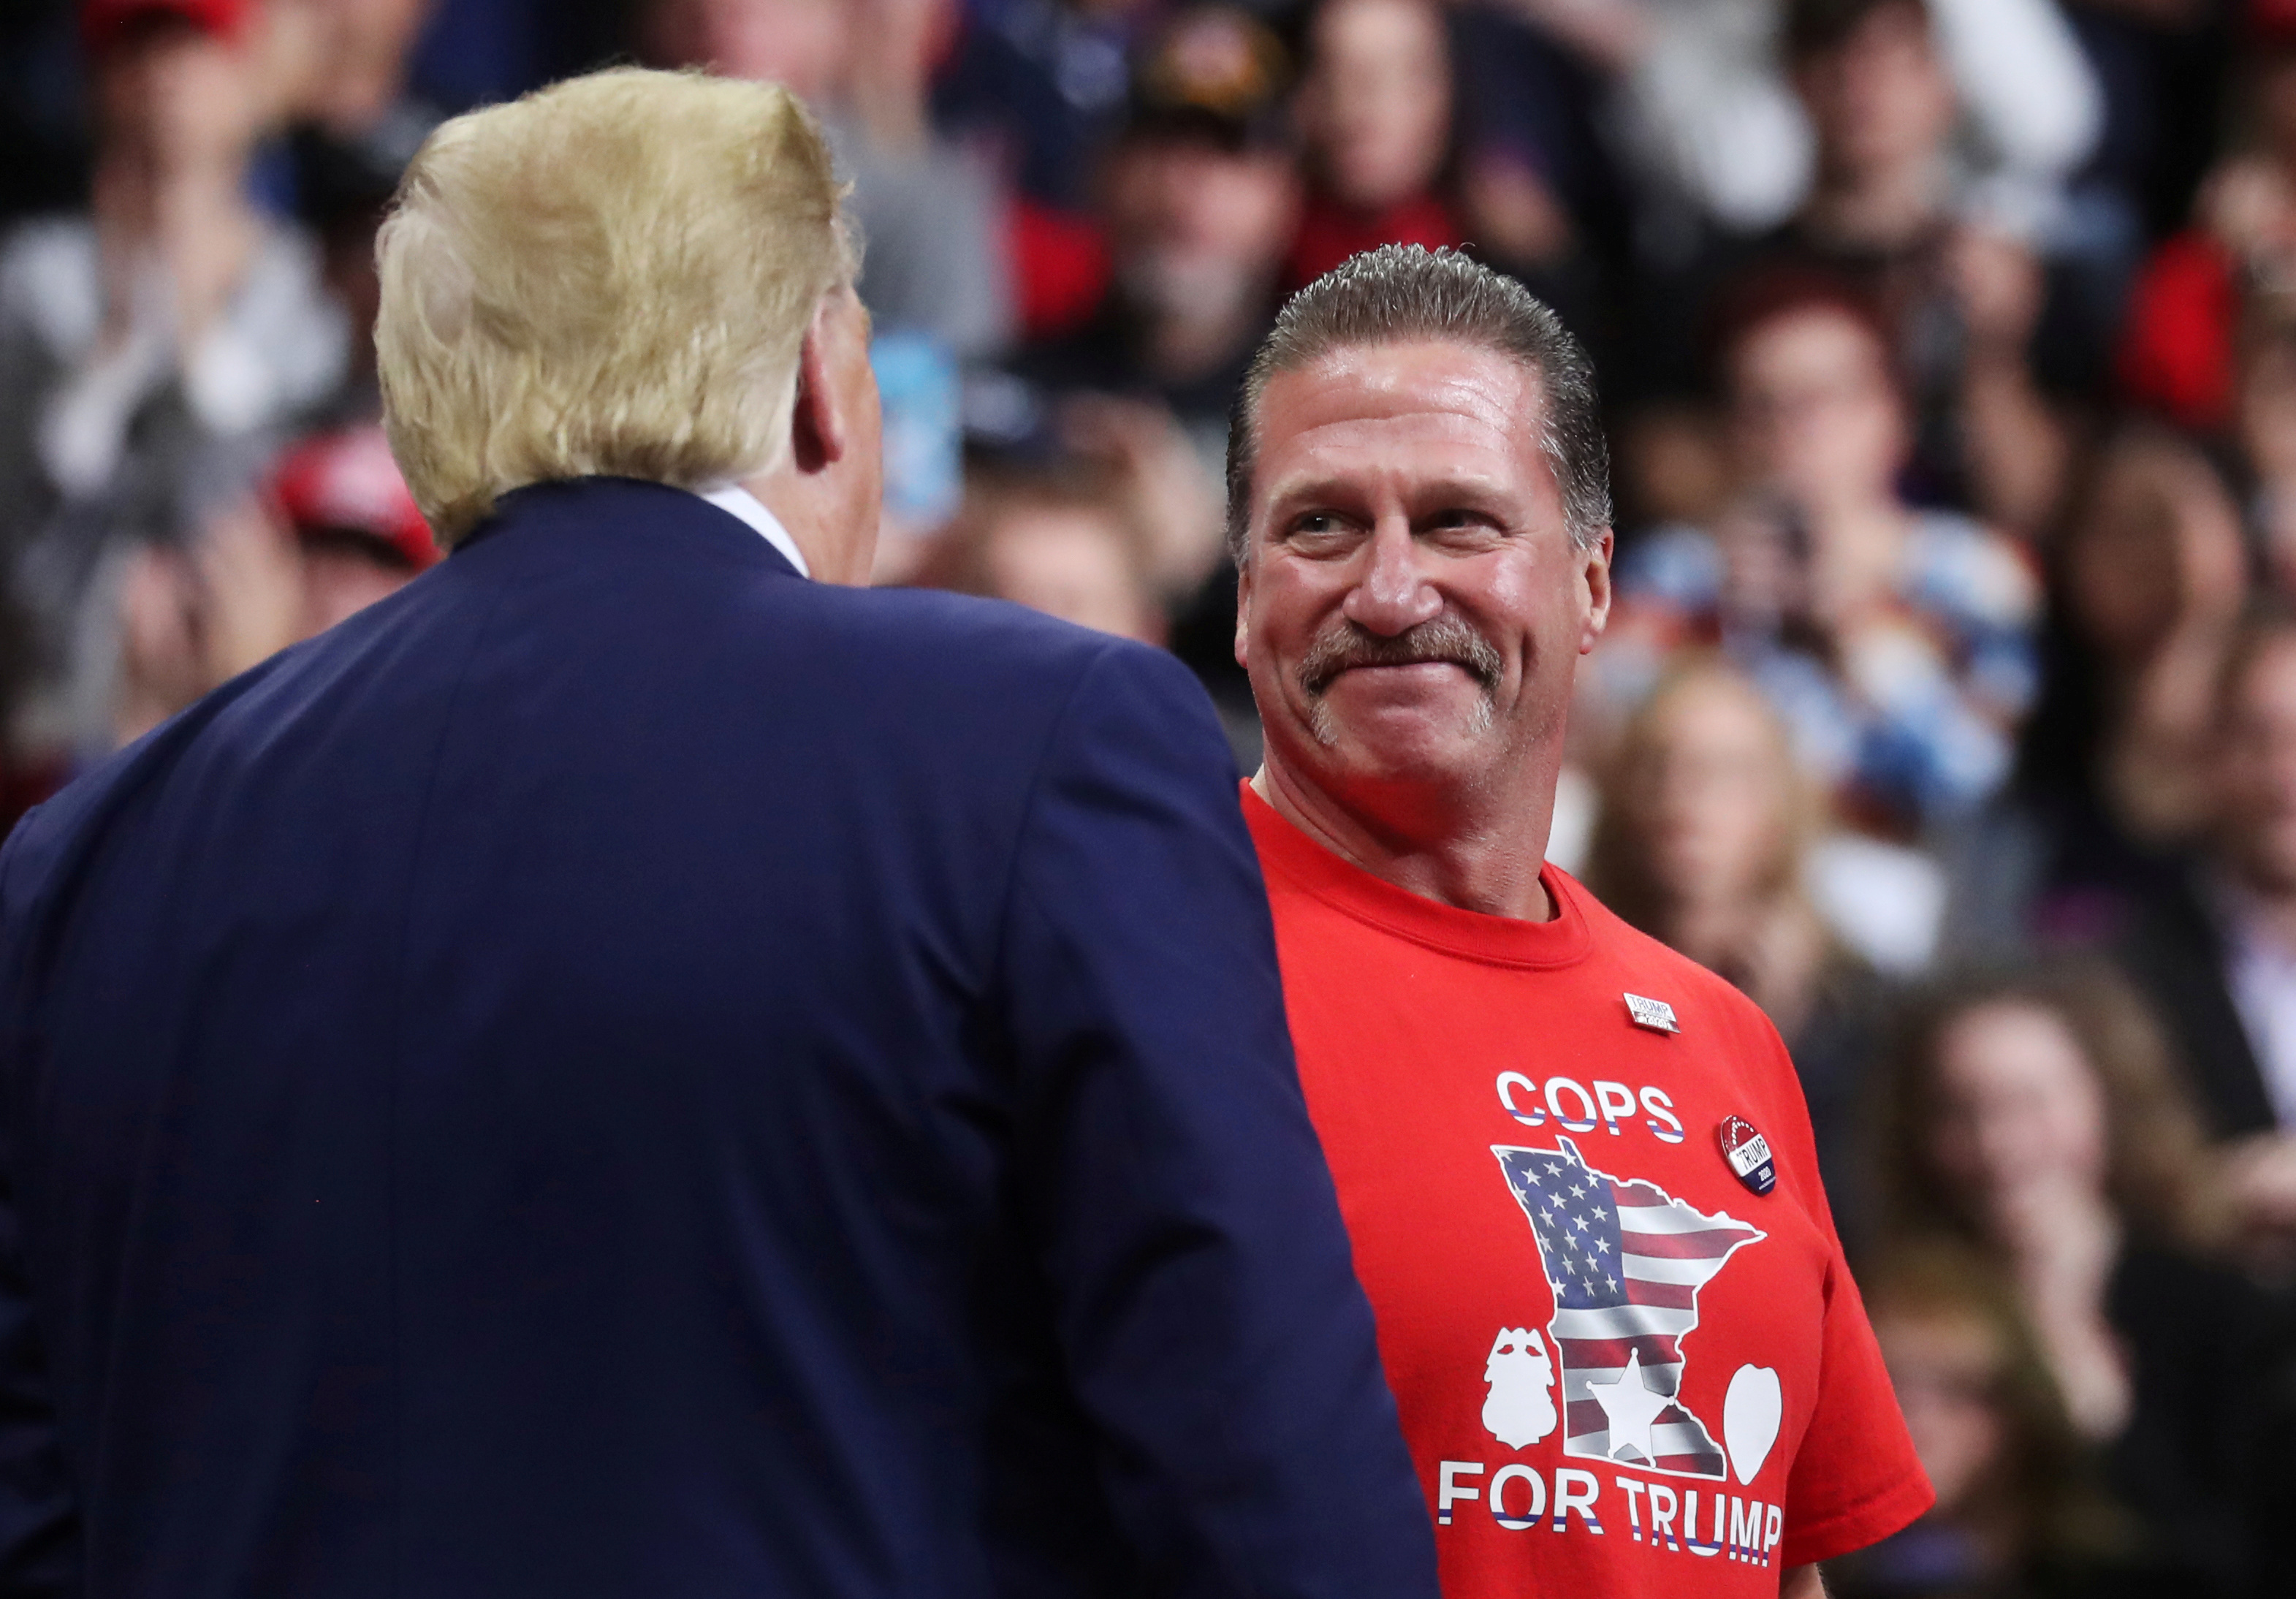 President Donald Trump greets Bob Kroll, president of the Minneapolis police union, during a campaign rally in Minneapolis, Minnesota, U.S., October 10, 2019. (Photo: Reuters/Leah Millis/File Photo)